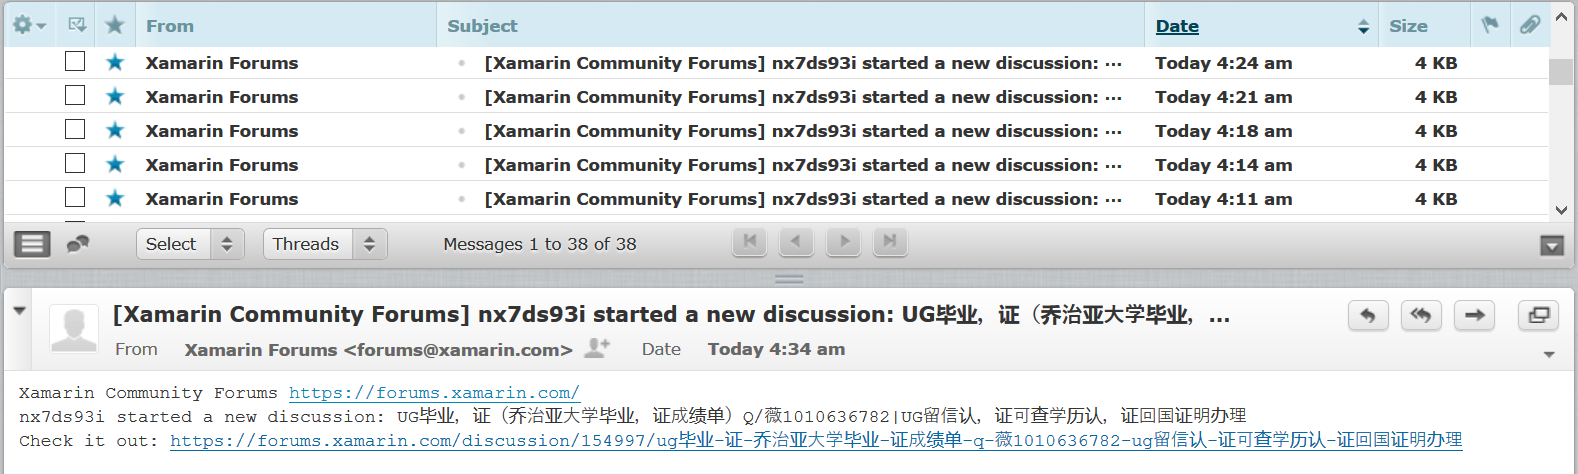 Spam is getting out of hand - Page 3 — Xamarin Community Forums